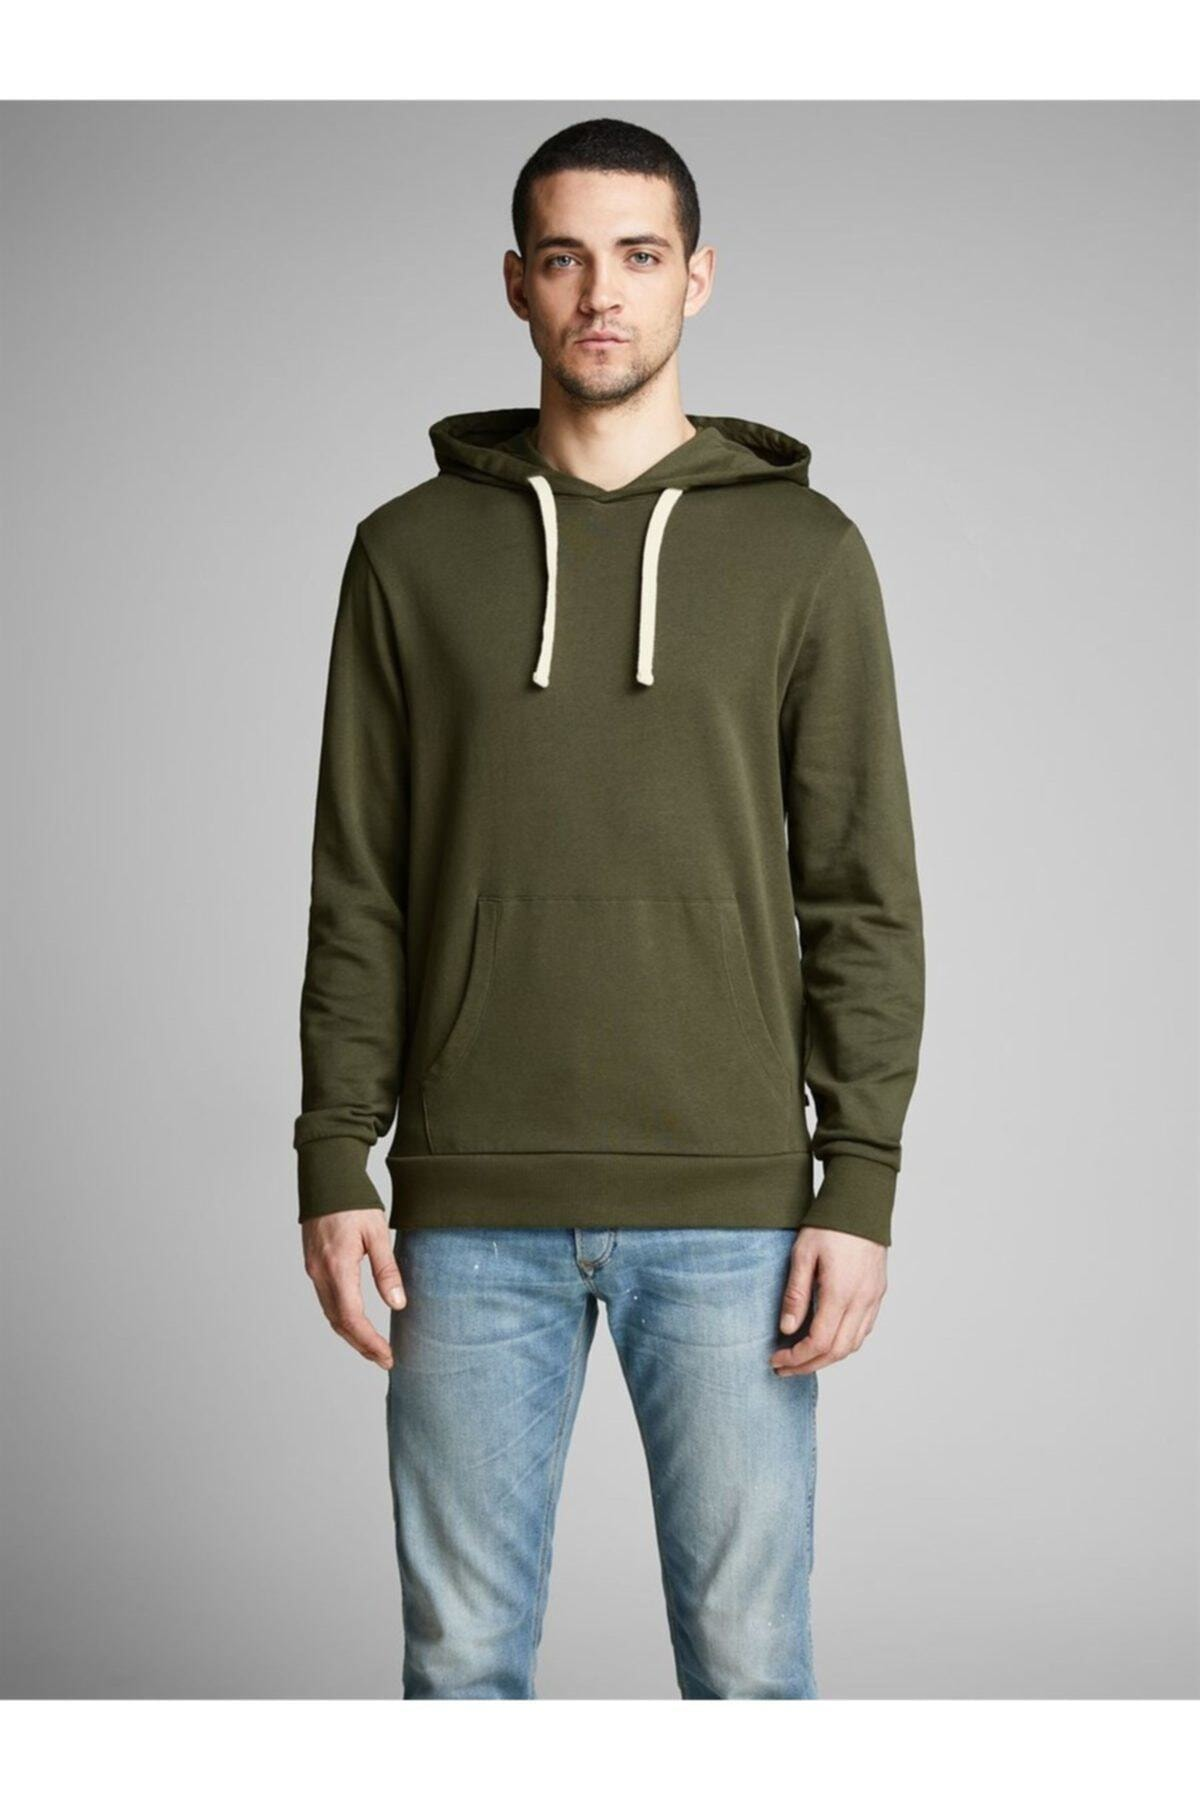 Jack & Jones Erkek Haki Holmen Sweat Hood Sweatshirt  12136885 1